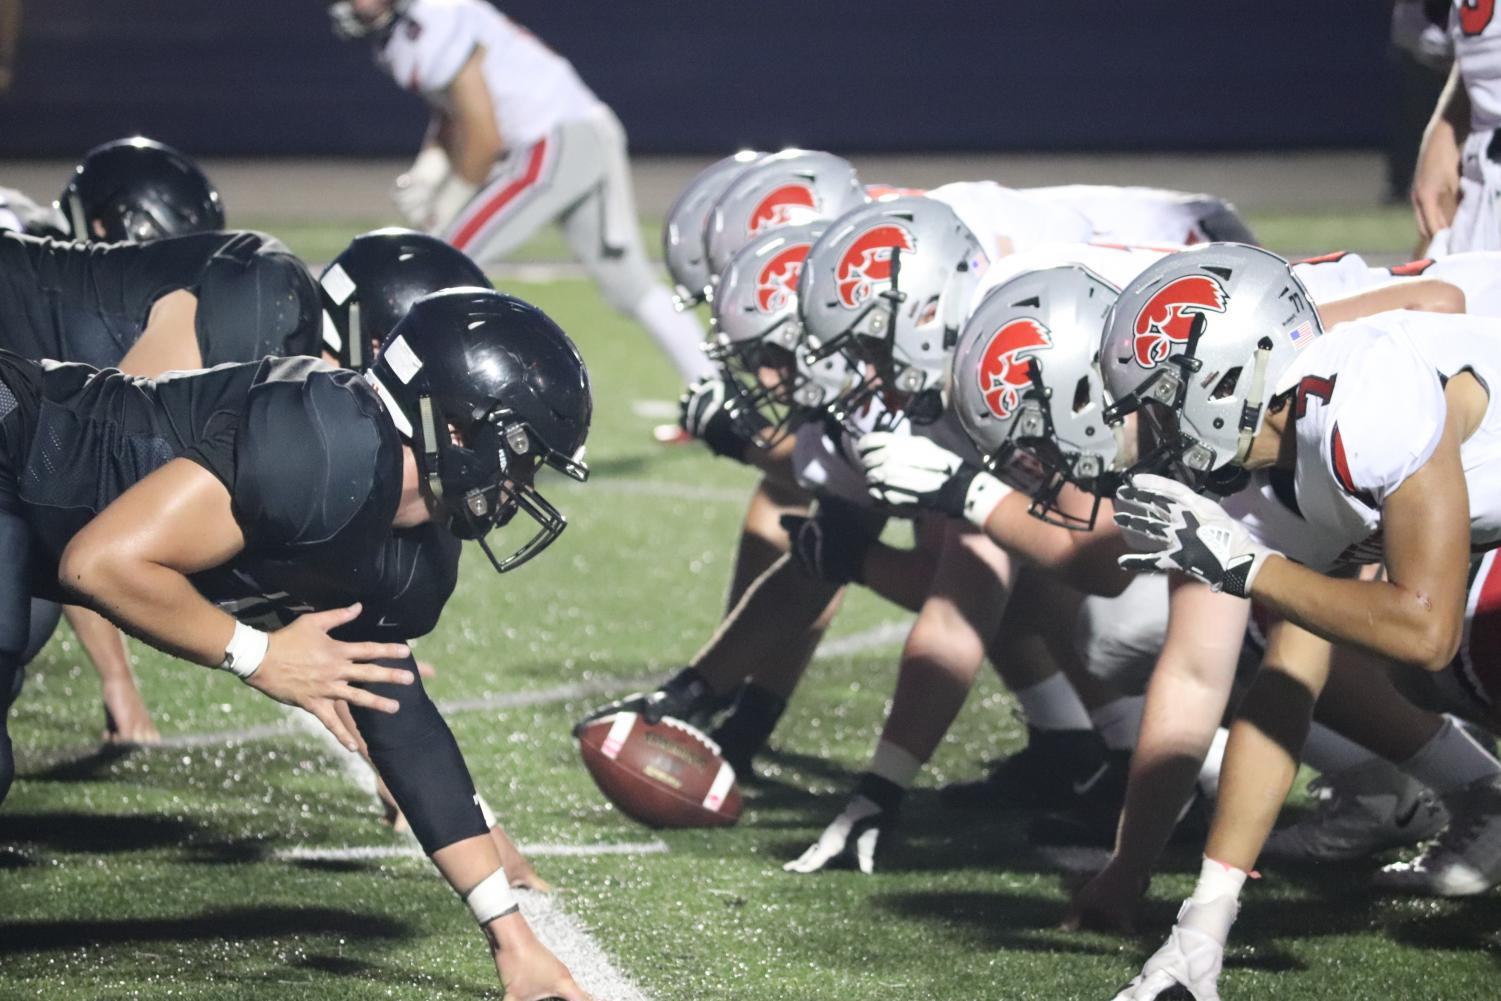 Liberty High vs. City High  in the first football game of the season.